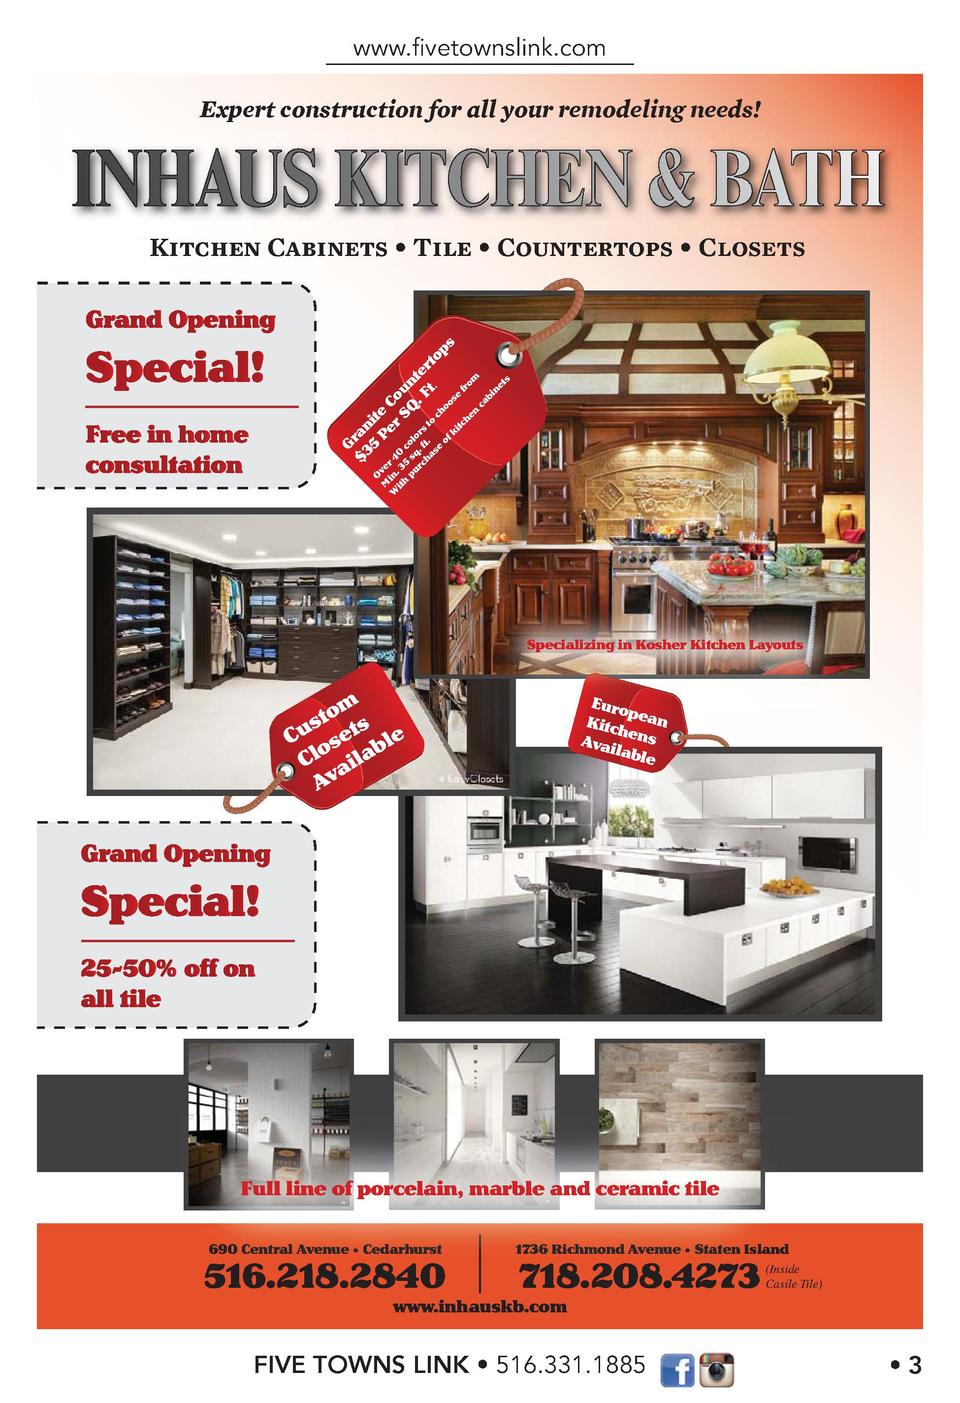 www.   vetownslink.com Expert construction for all your remodeling needs   Kitchen Cabinets Tile Countertops  G  3 ran  5 ...